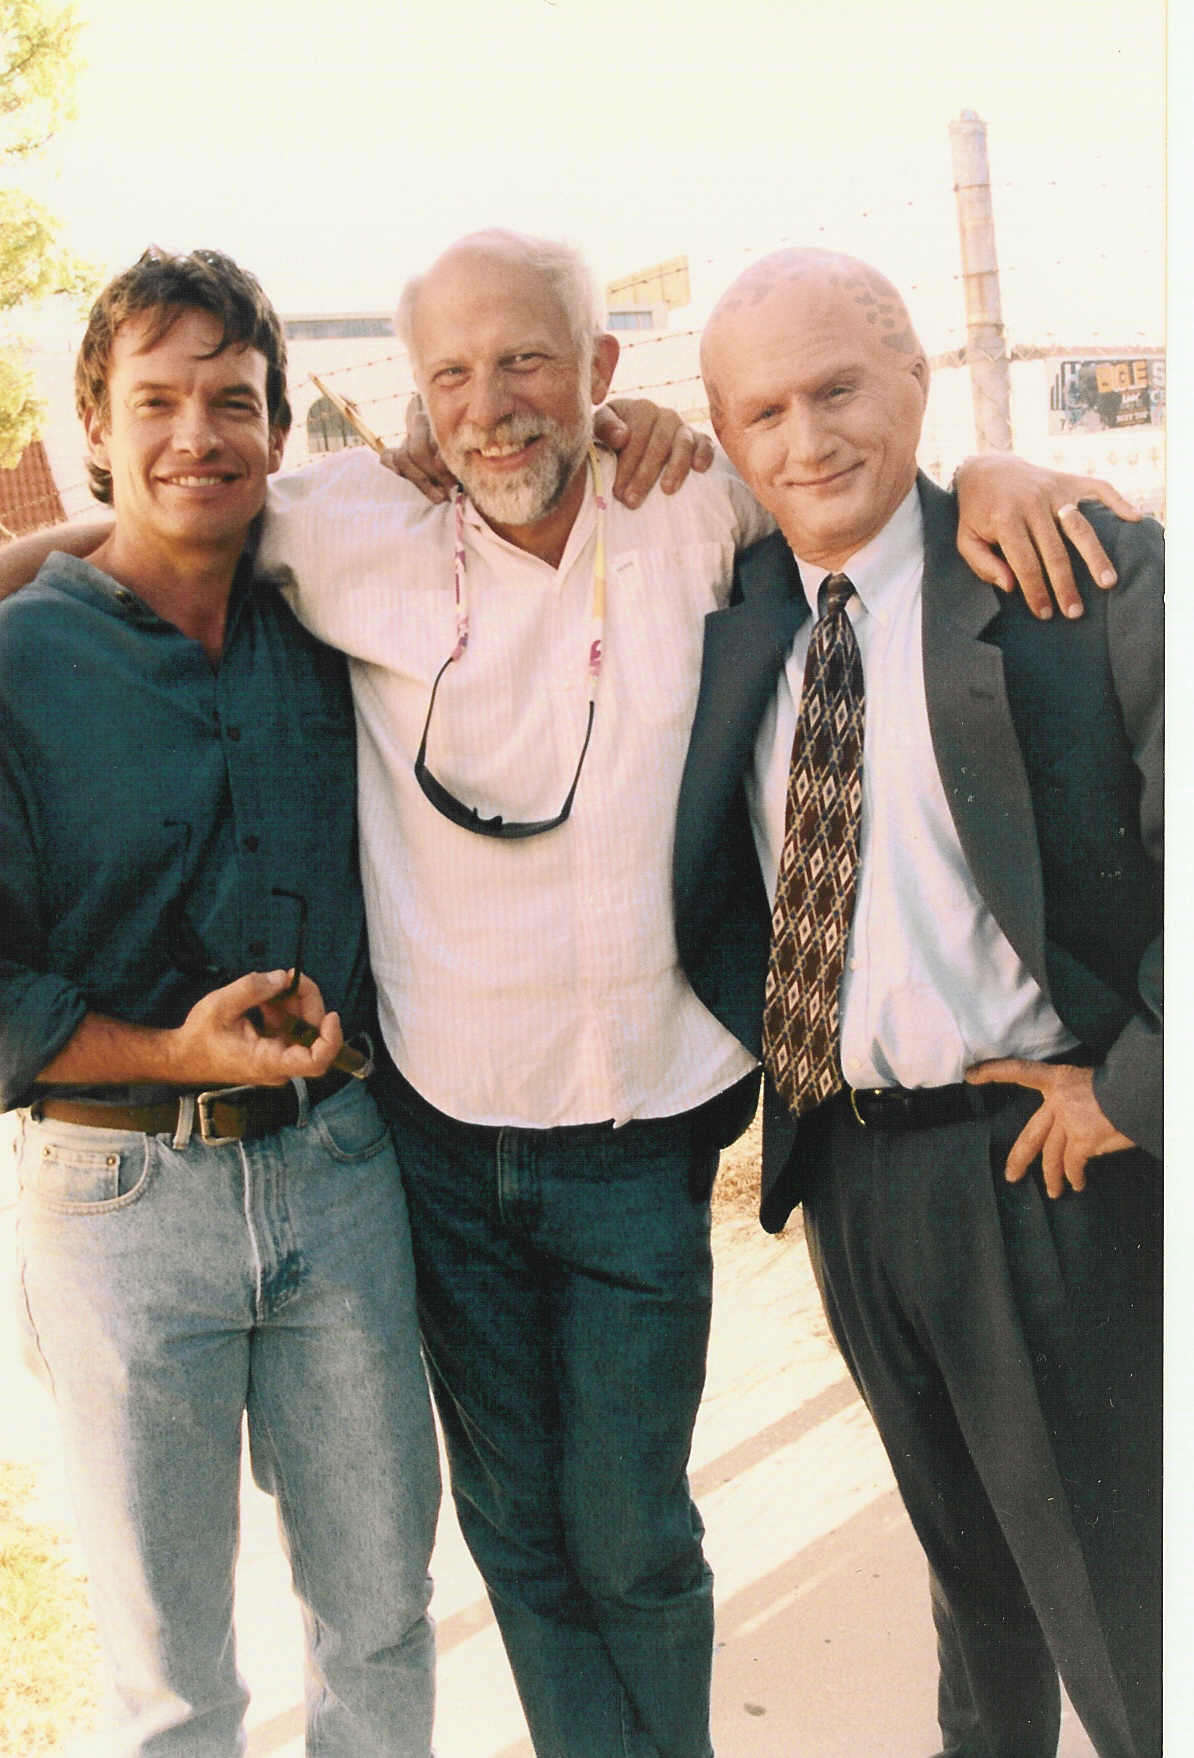 The Last Shot on The Last Day of The Last Alien Nation Movie -- eight years of great work and pals forever